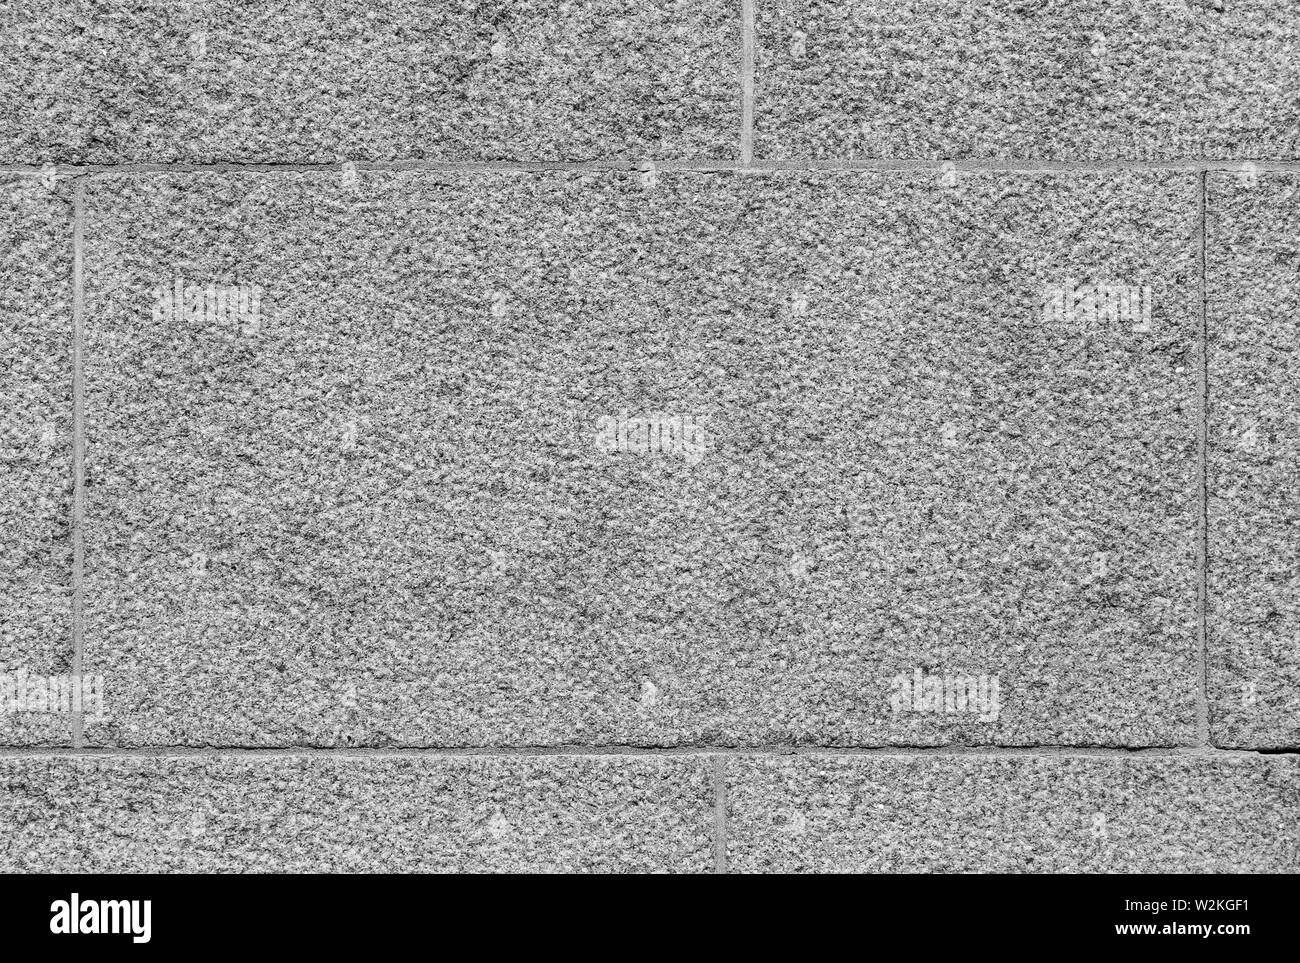 Close-up of part of a bumpy granite block stone wall in black and white. High resolution full frame background texture. Stock Photo